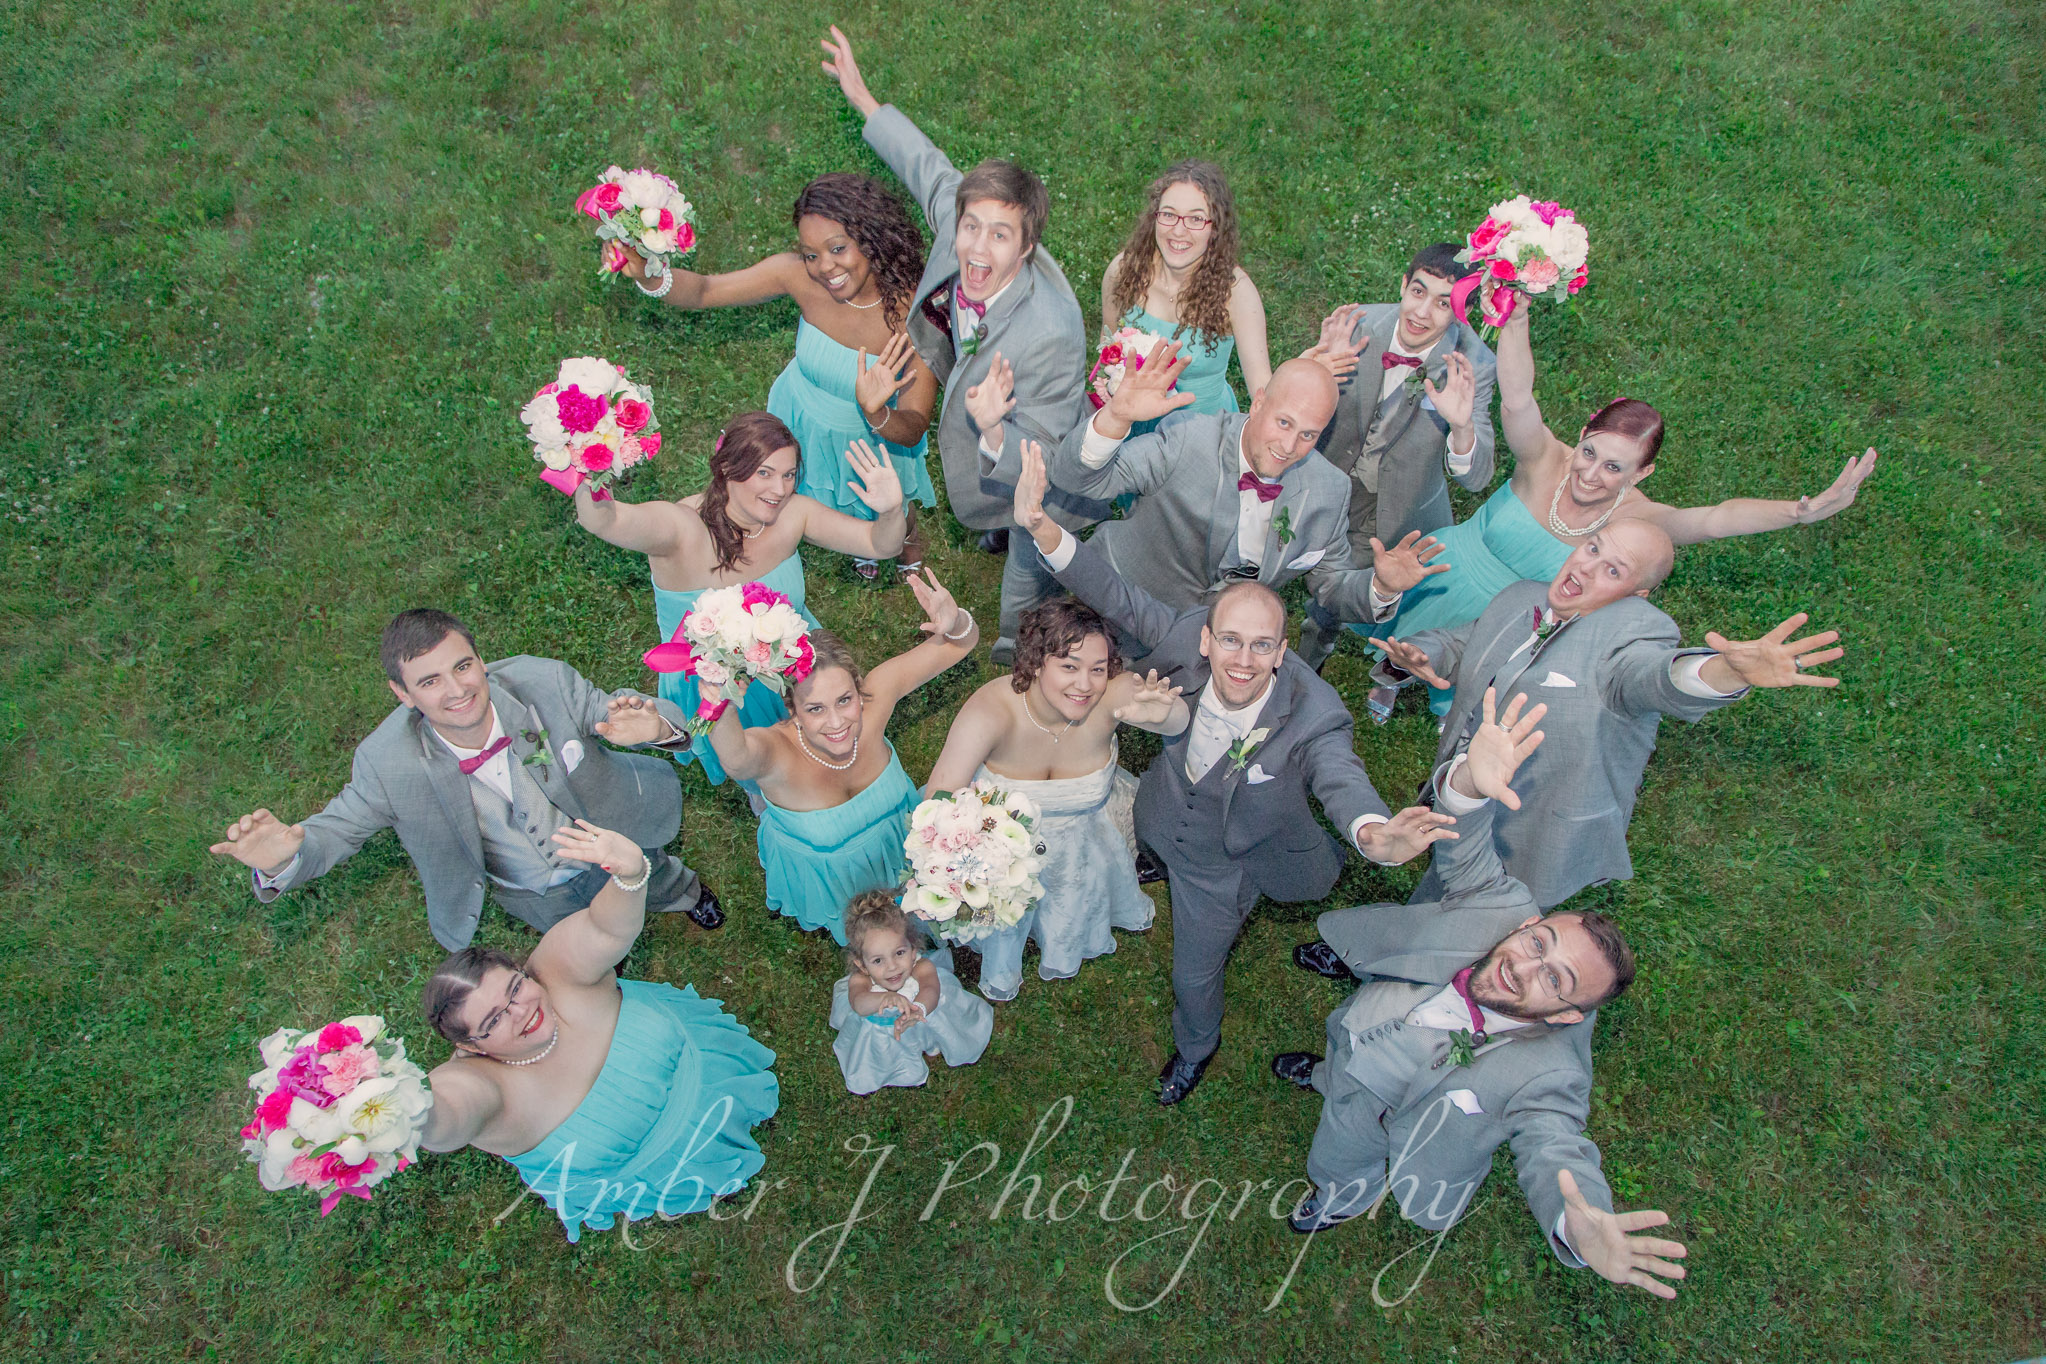 Sommer_Wedding_AmberJphotography_27.jpg